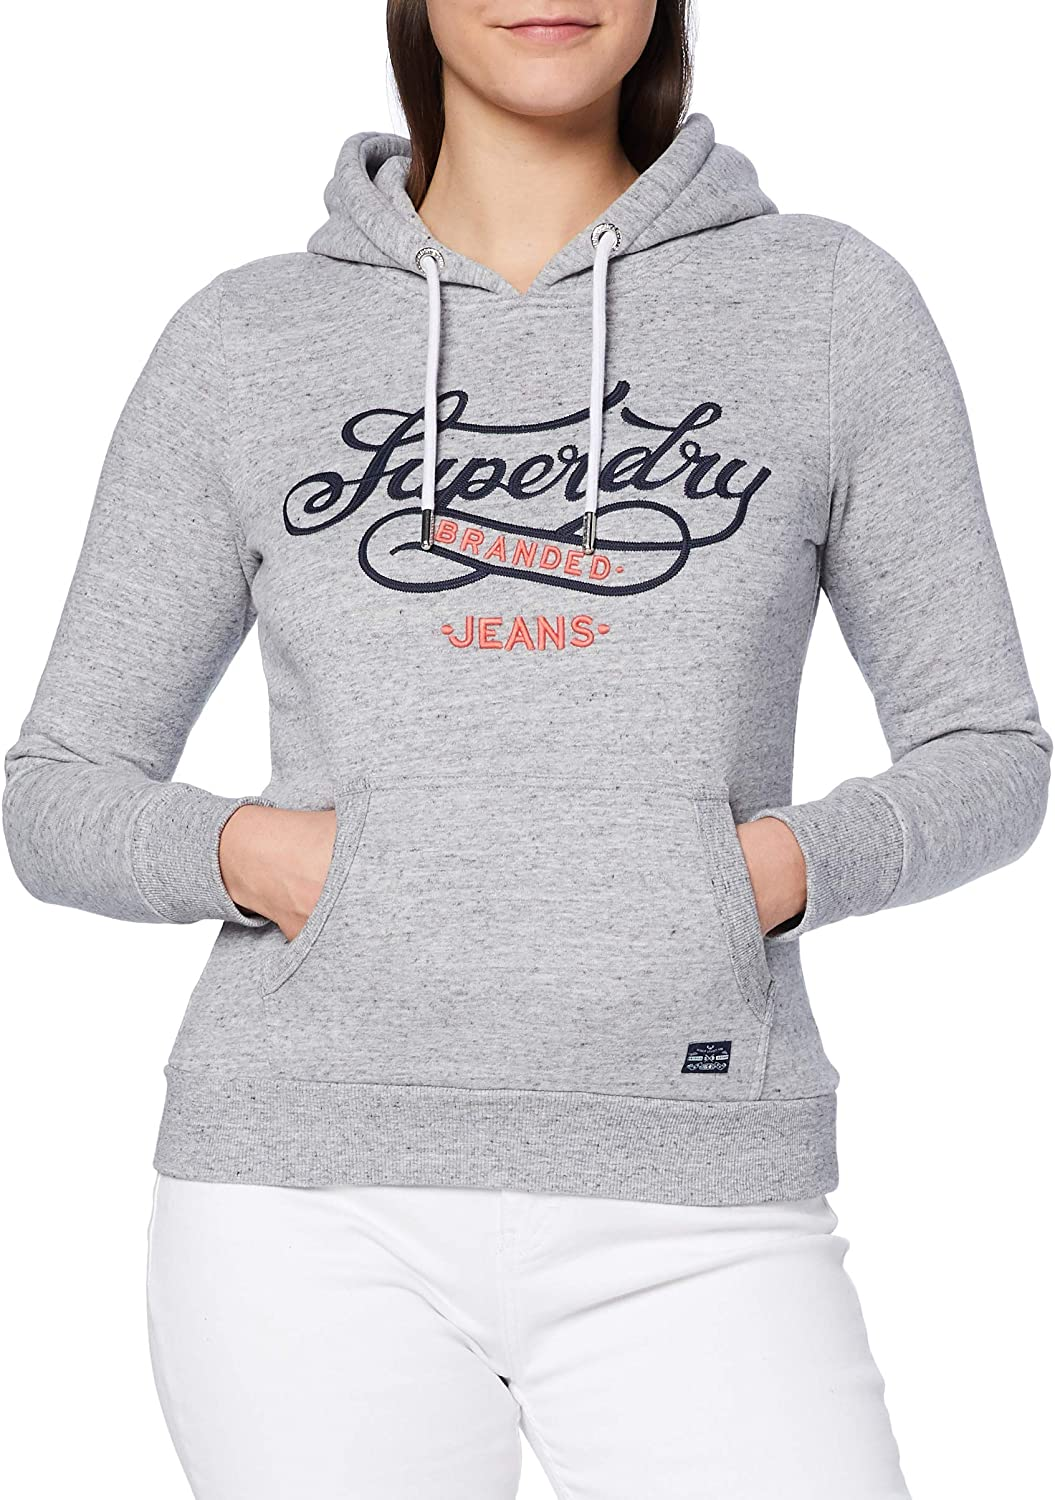 Superdry Reworked Classic Applique Hoodie